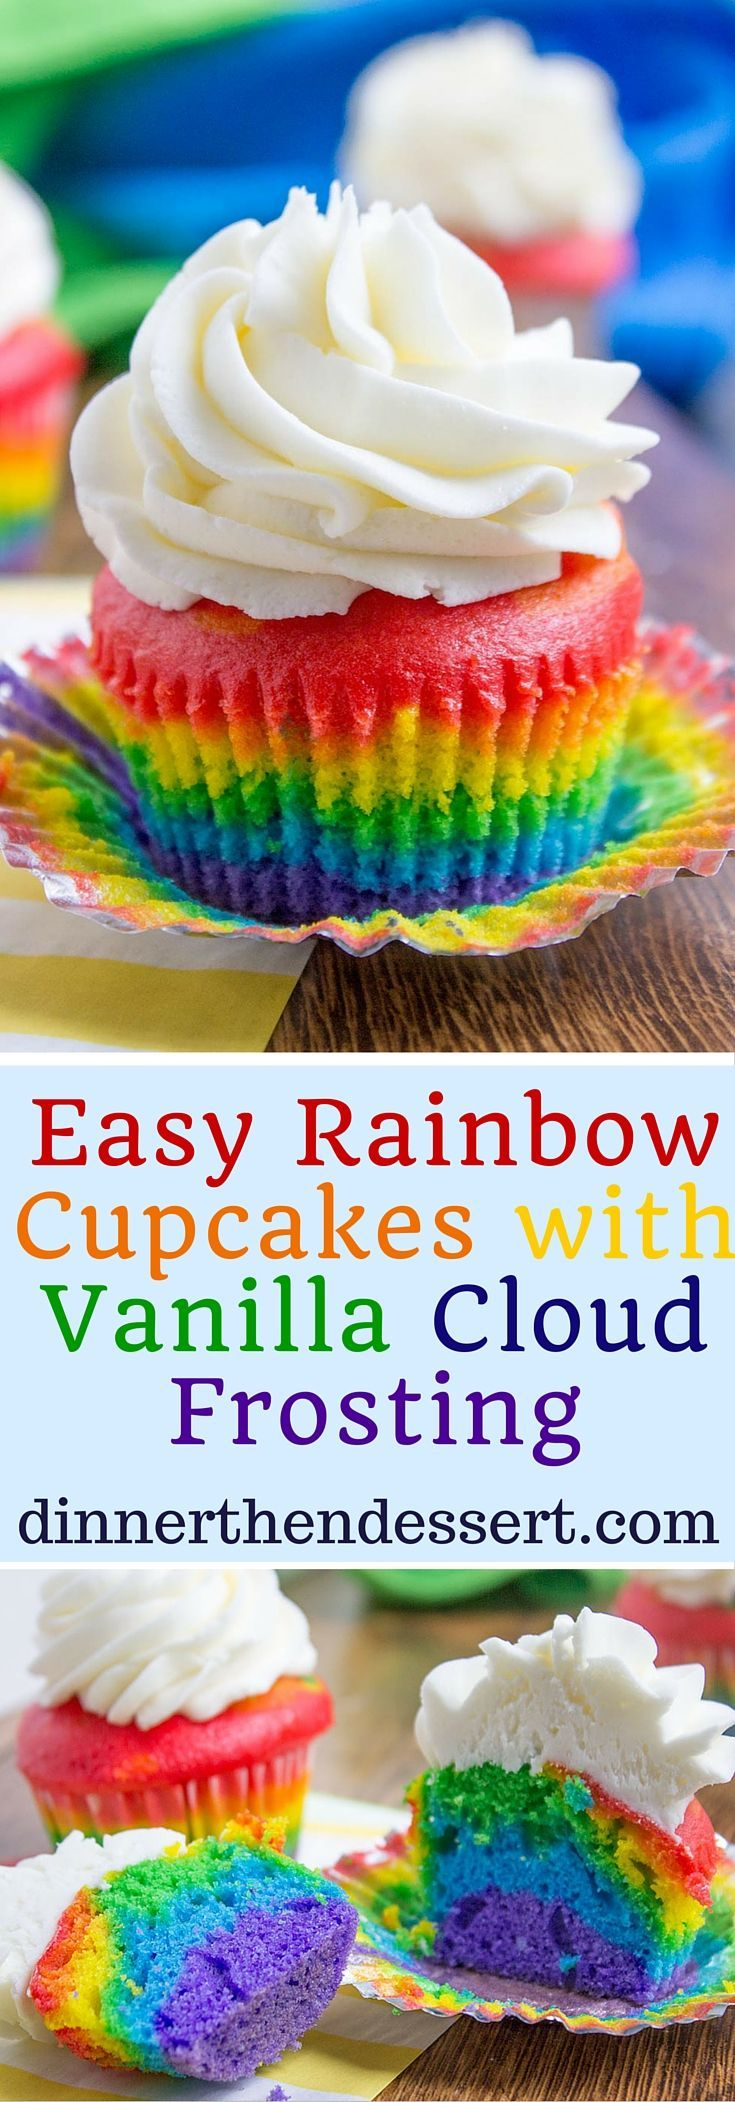 These cakes look so pretty, just use natural food colour! I must try making these.   Rainbow Cupcakes with fluffy cloud-like vanilla frosting that is guaranteed to make anyone who sees them smile. No cake mix, still EASY.